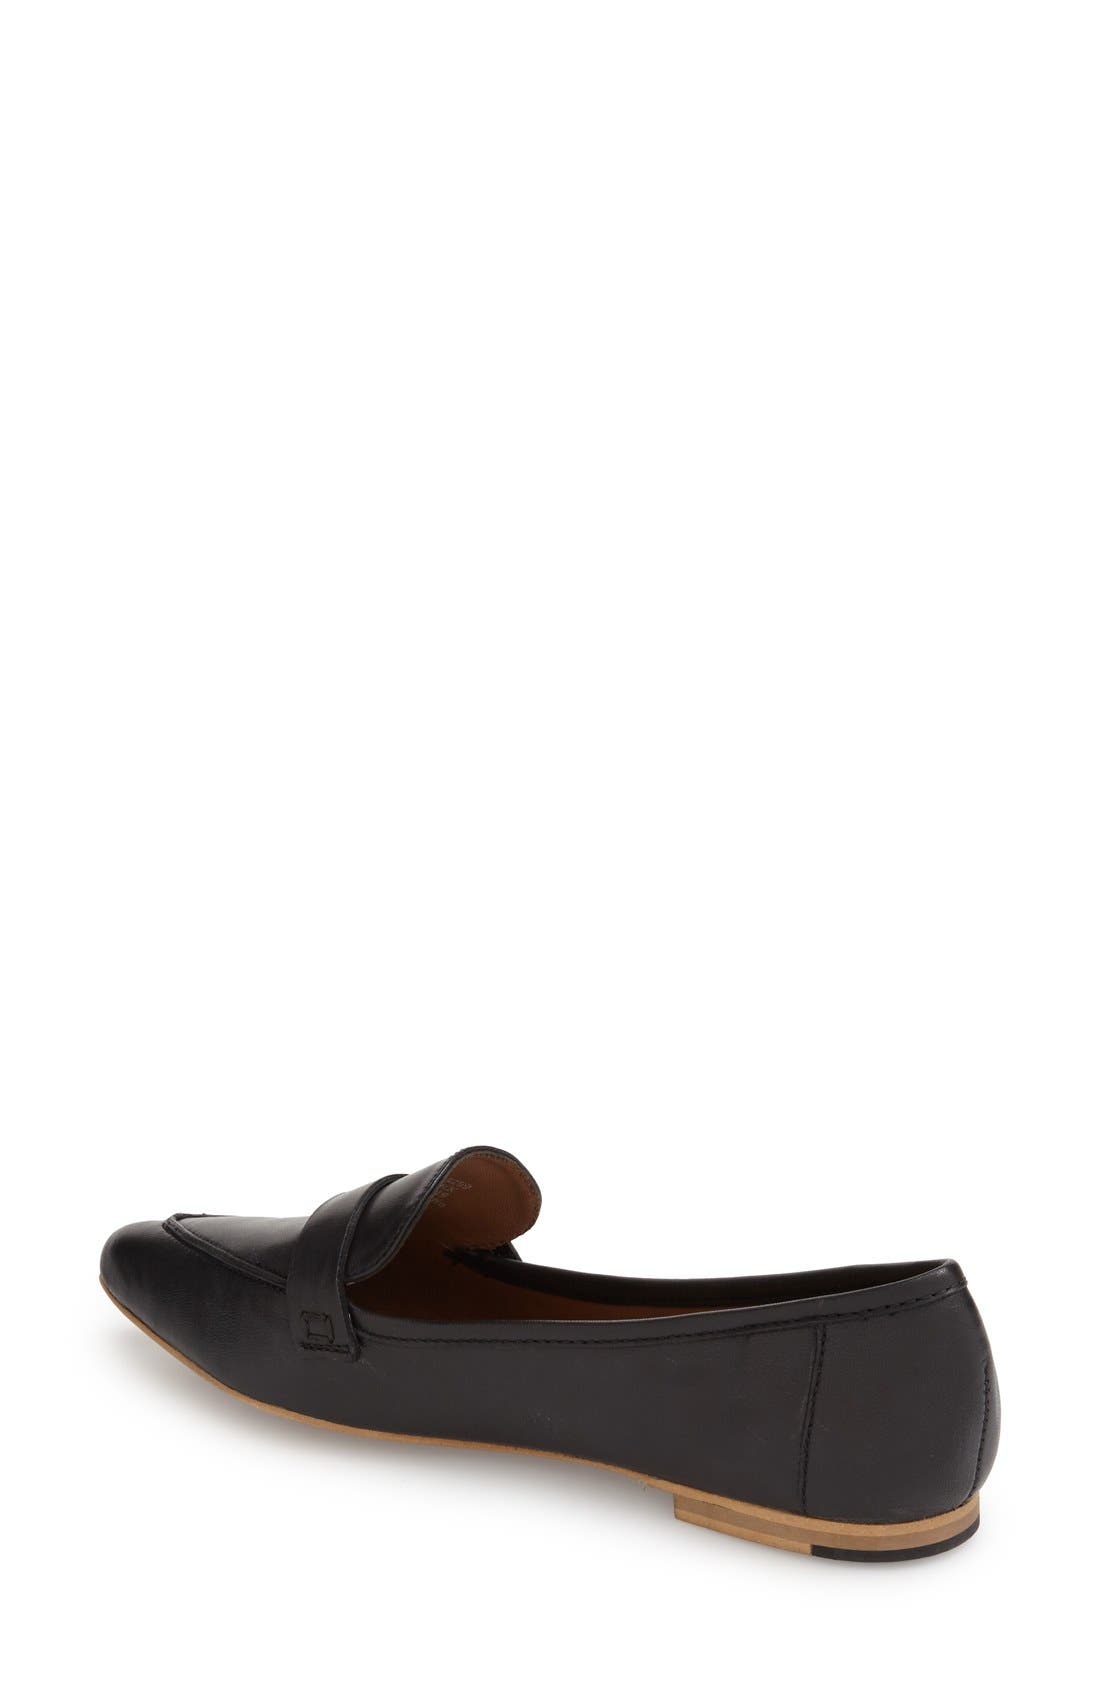 Kimi Loafer,                             Alternate thumbnail 4, color,